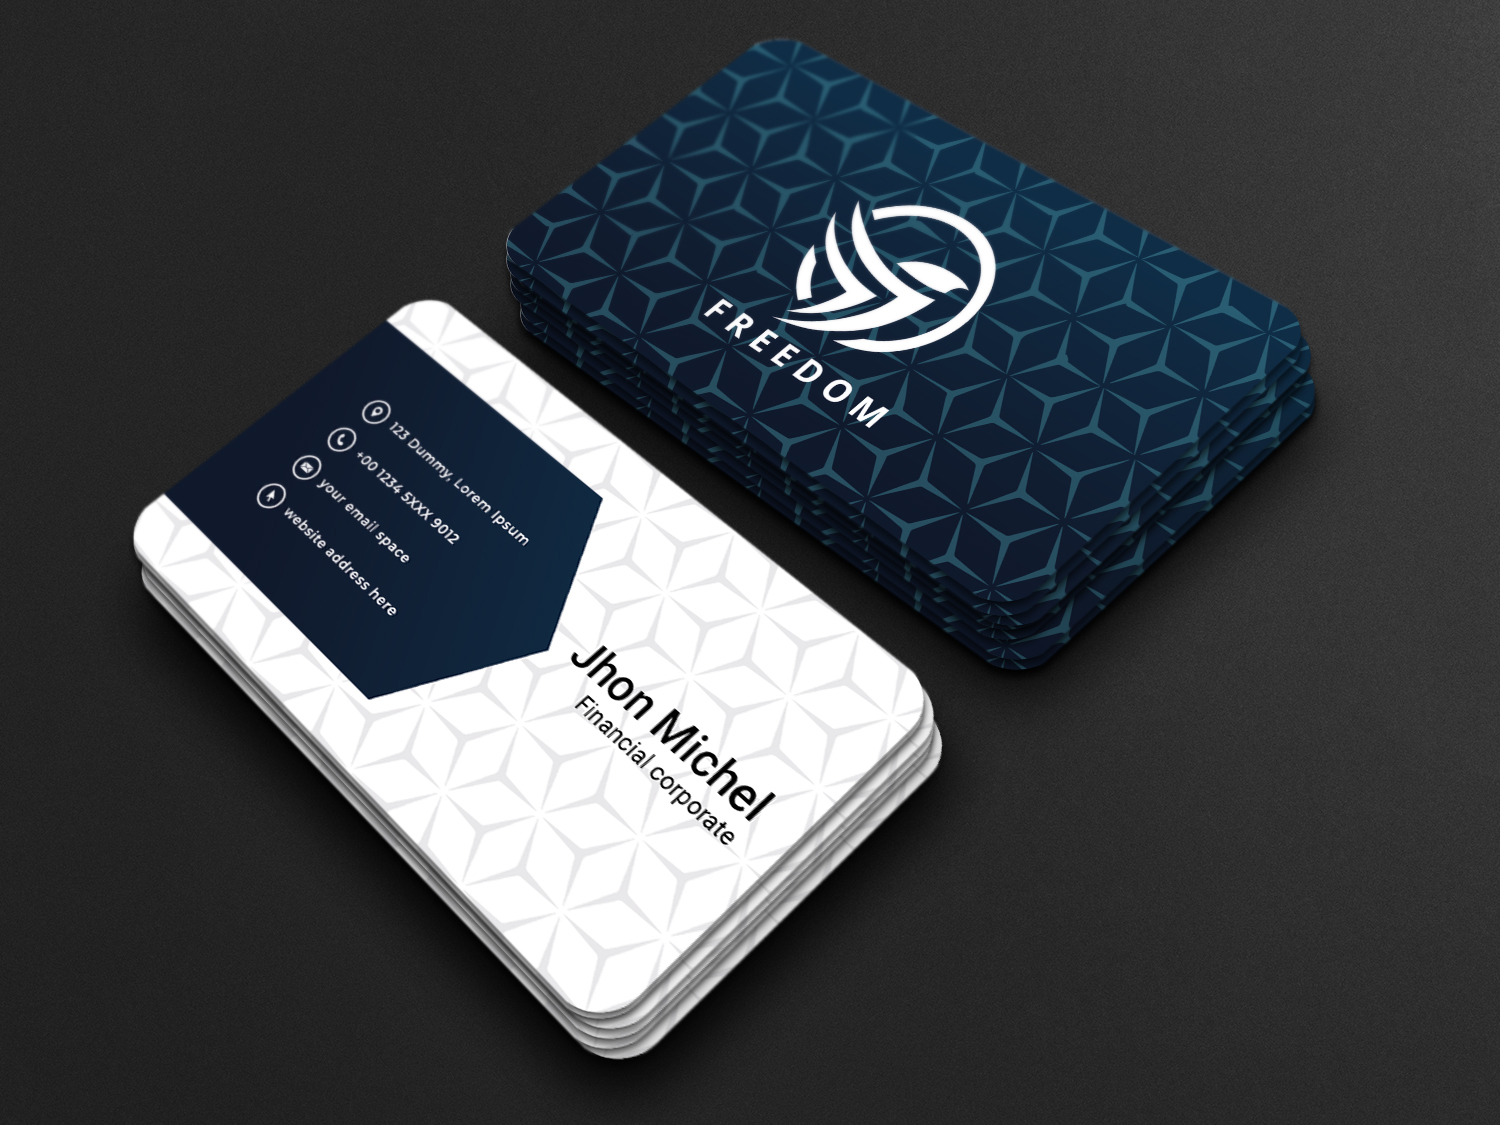 I will creative design business card,  letterhead,  and stationary